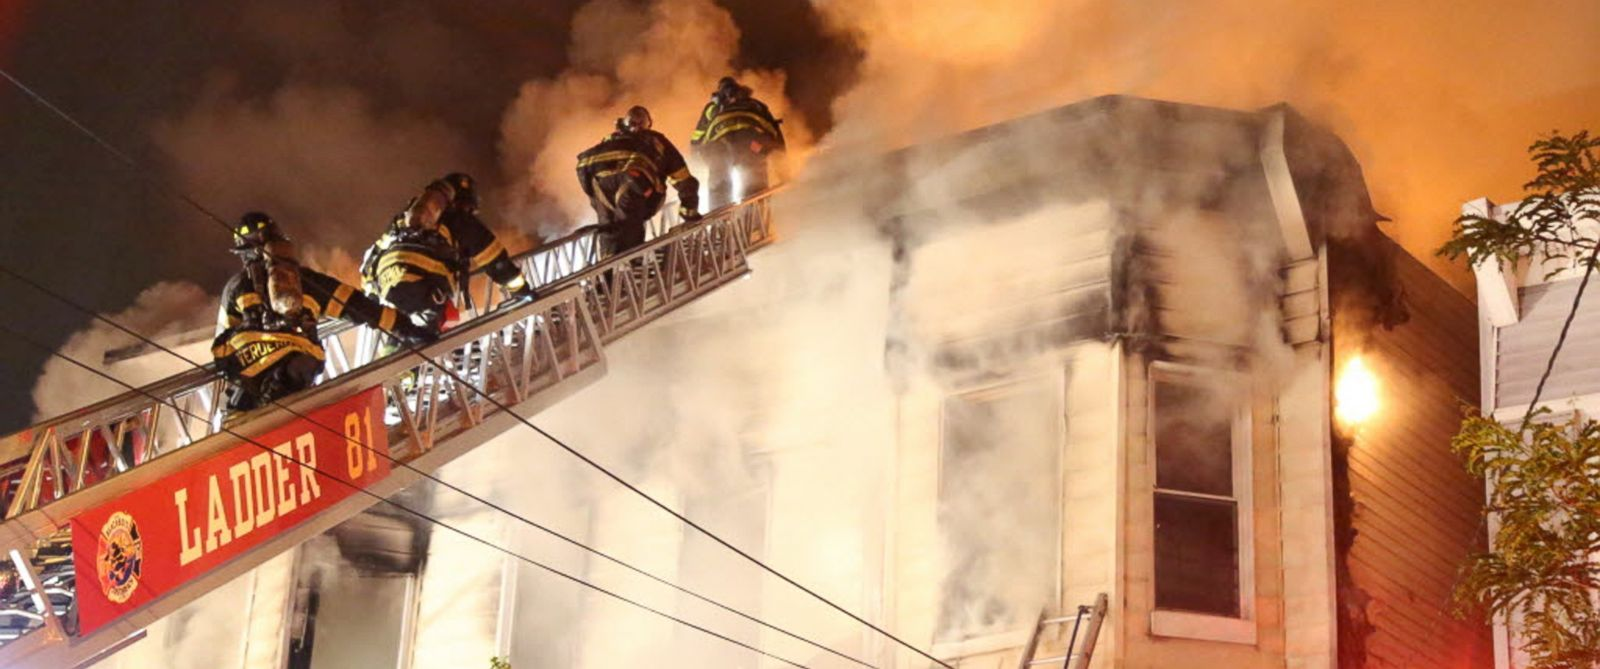 PHOTO: Firefighters battle a fire that tore through three townhouses on New York Citys Staten Island, June 5, 2014.